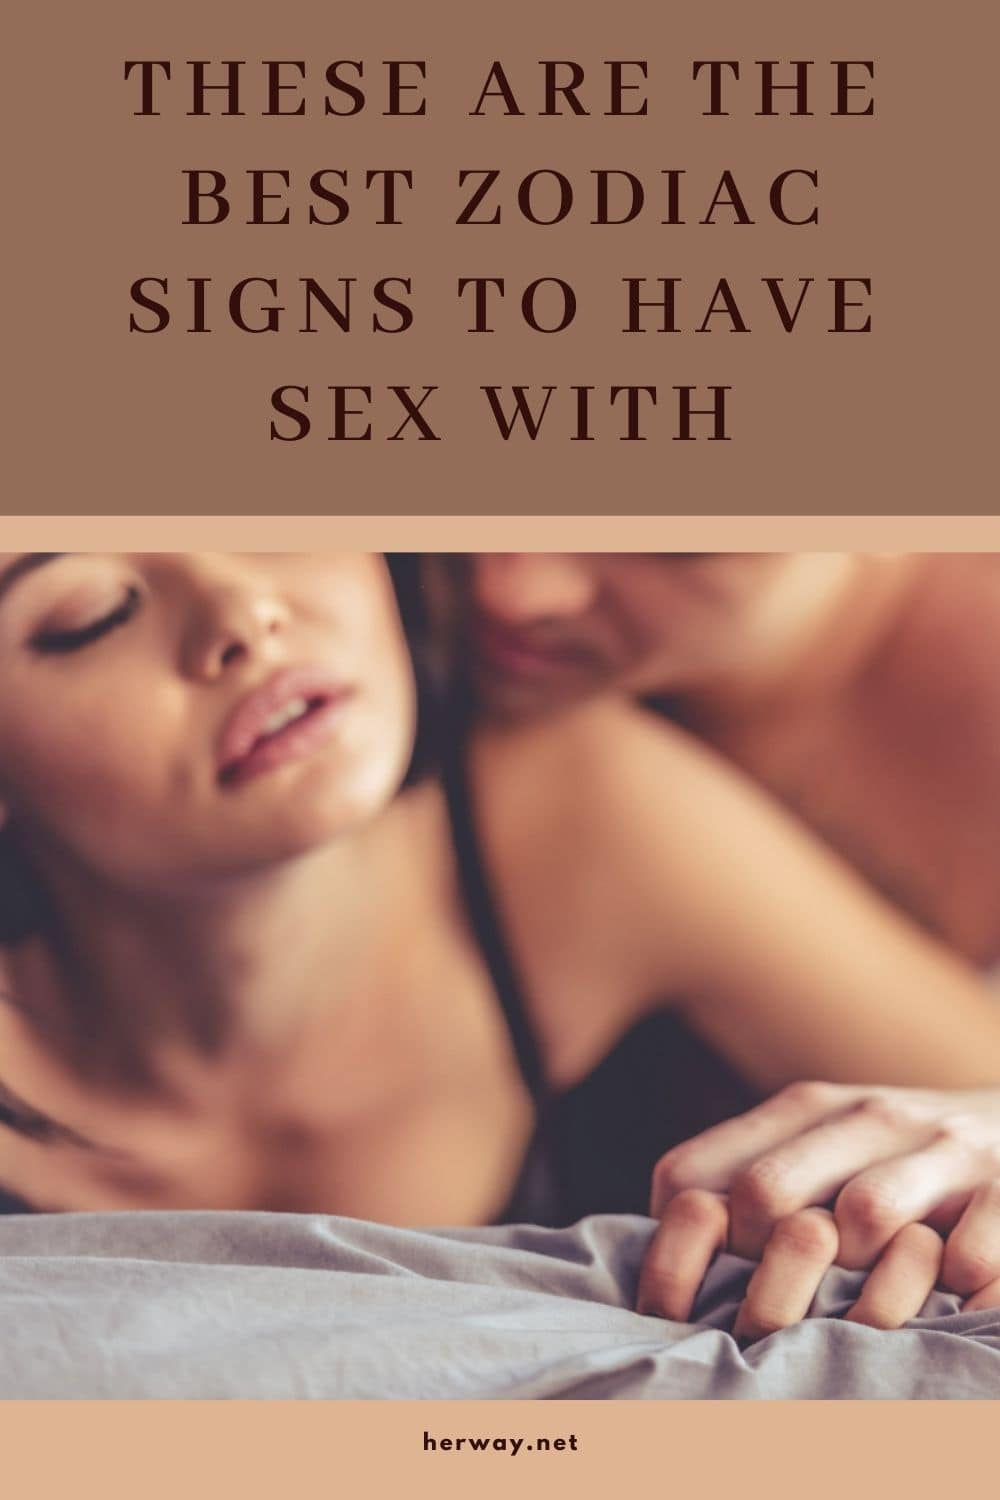 These Are The Best Zodiac Signs To Have Sex With